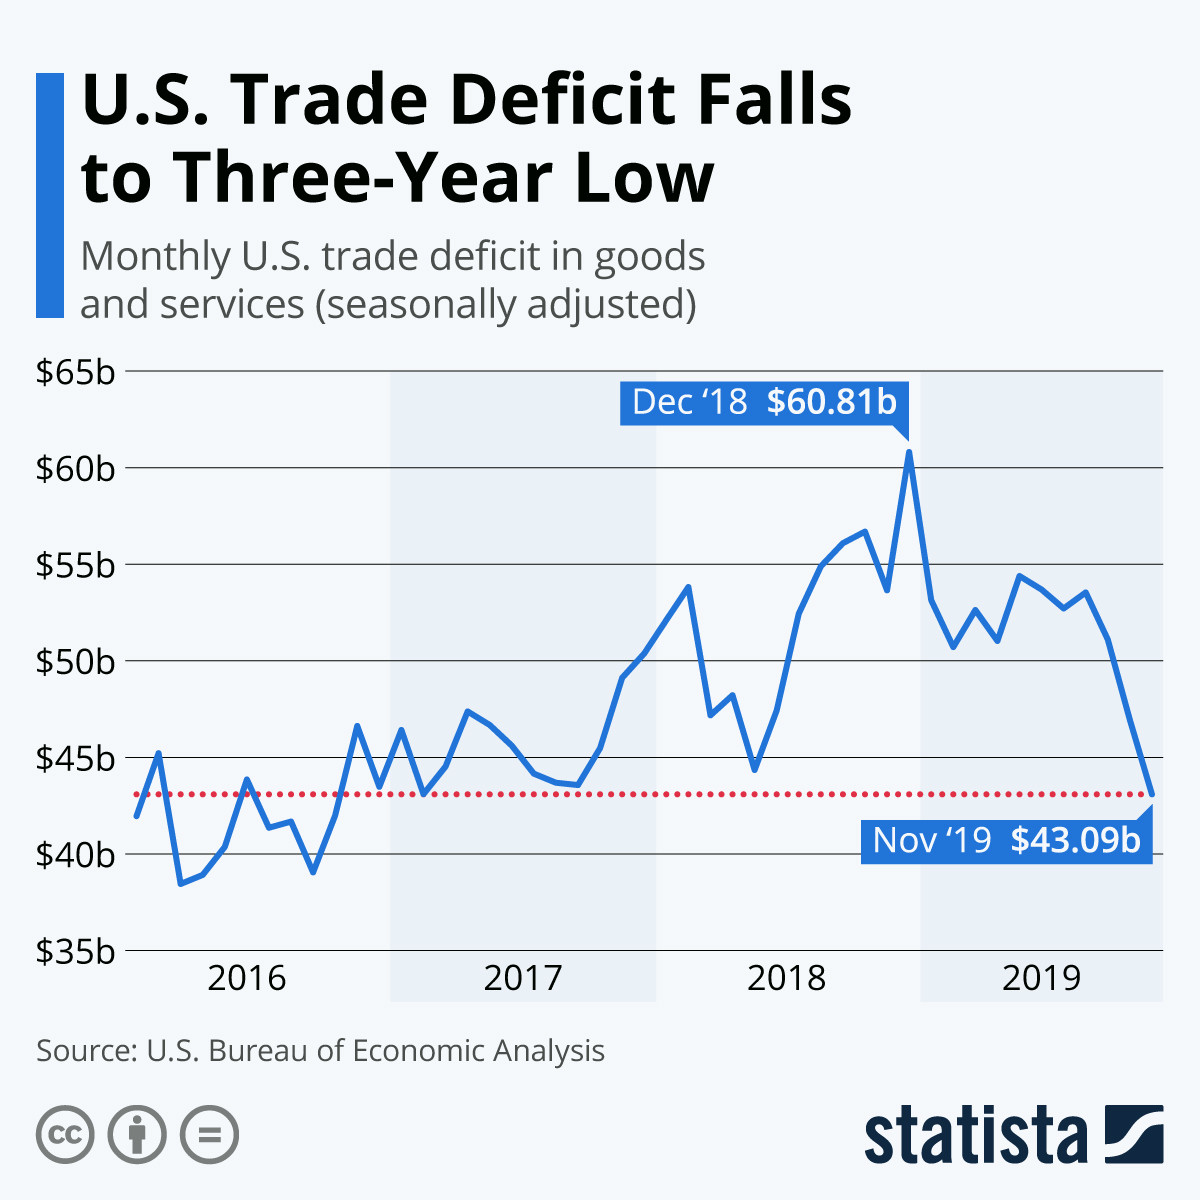 US trade deficit falls to three year low